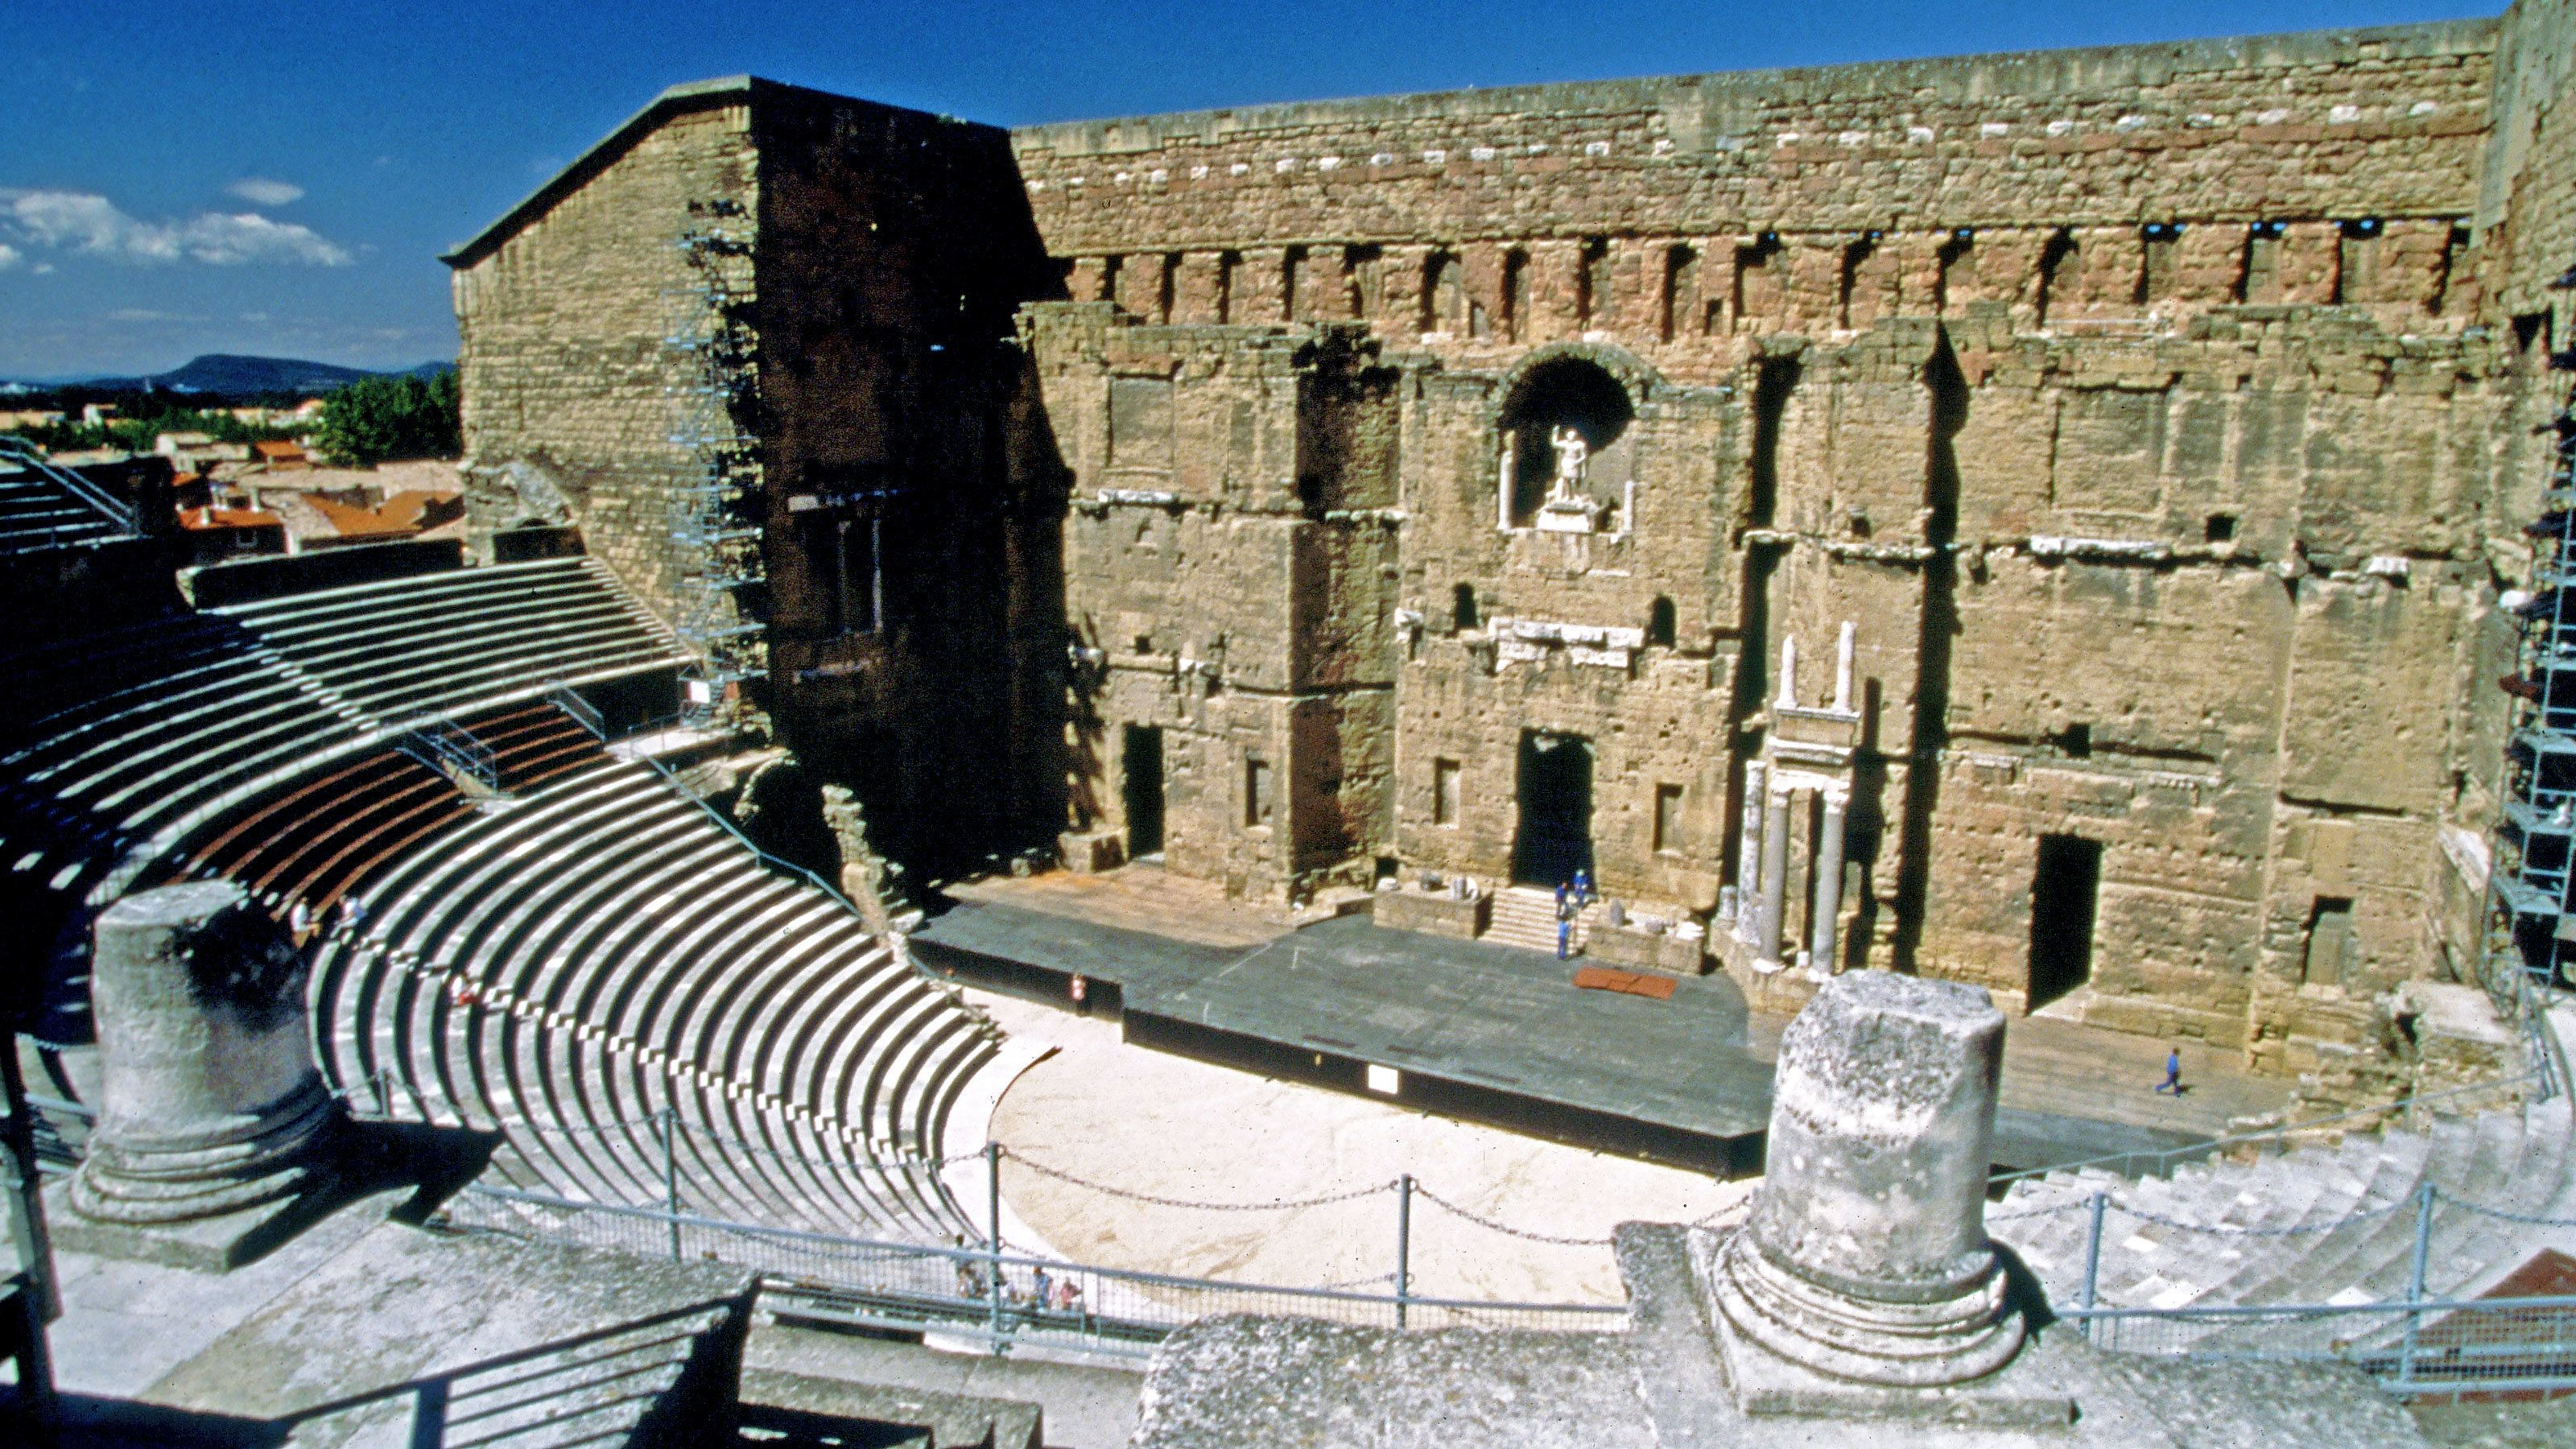 Historic amphitheater in France